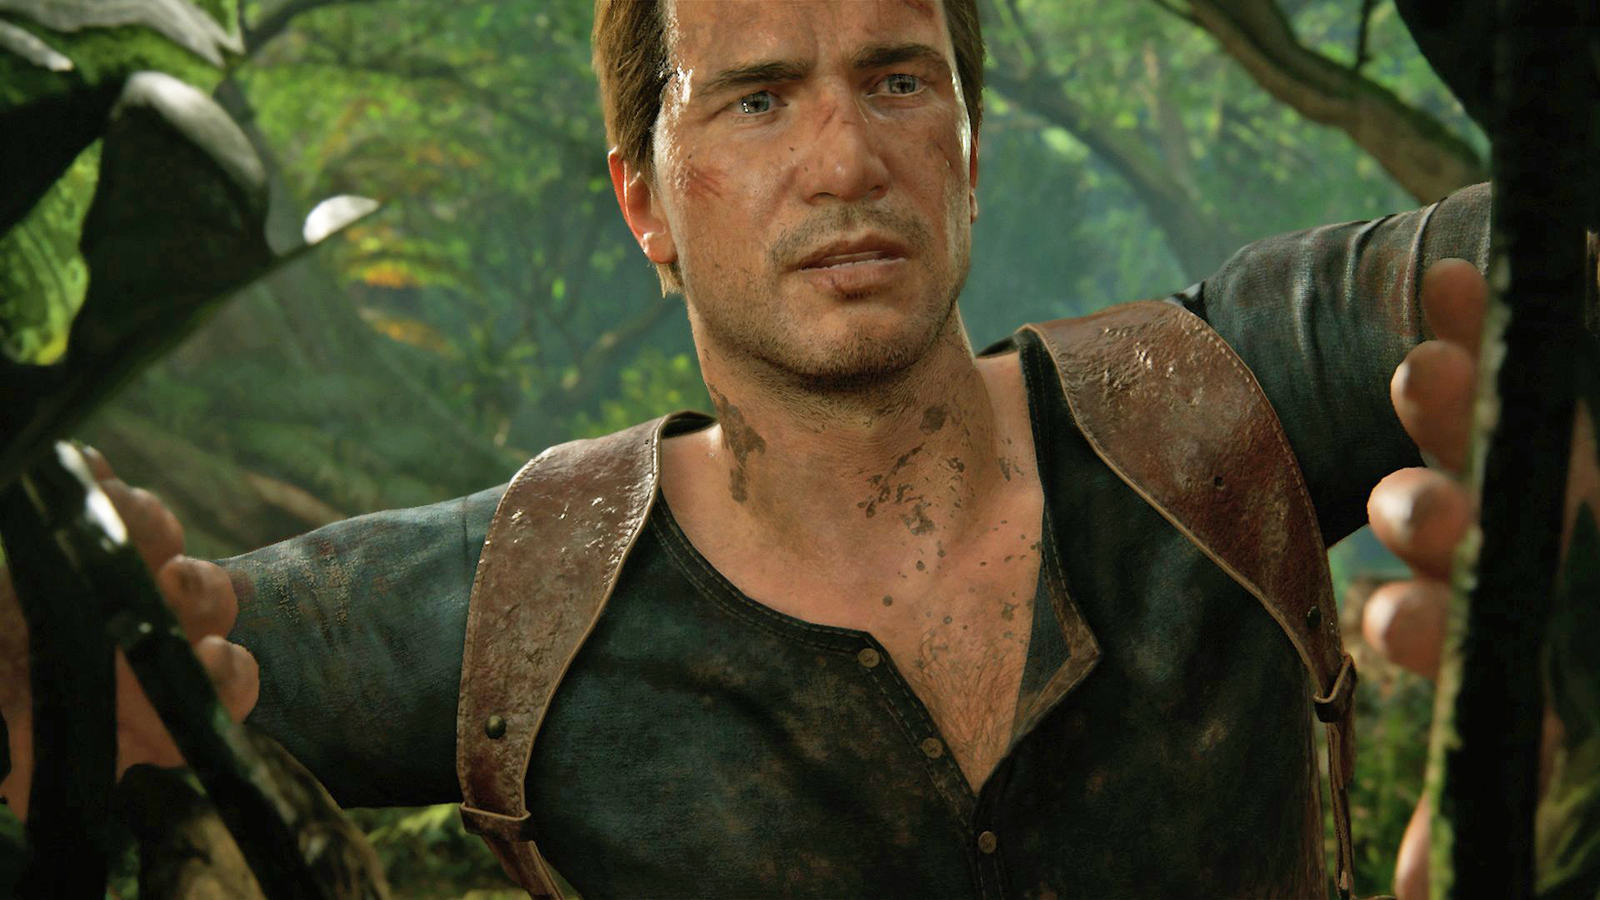 Naughty Dog Developer Touches On Uncharted 4's Game Length